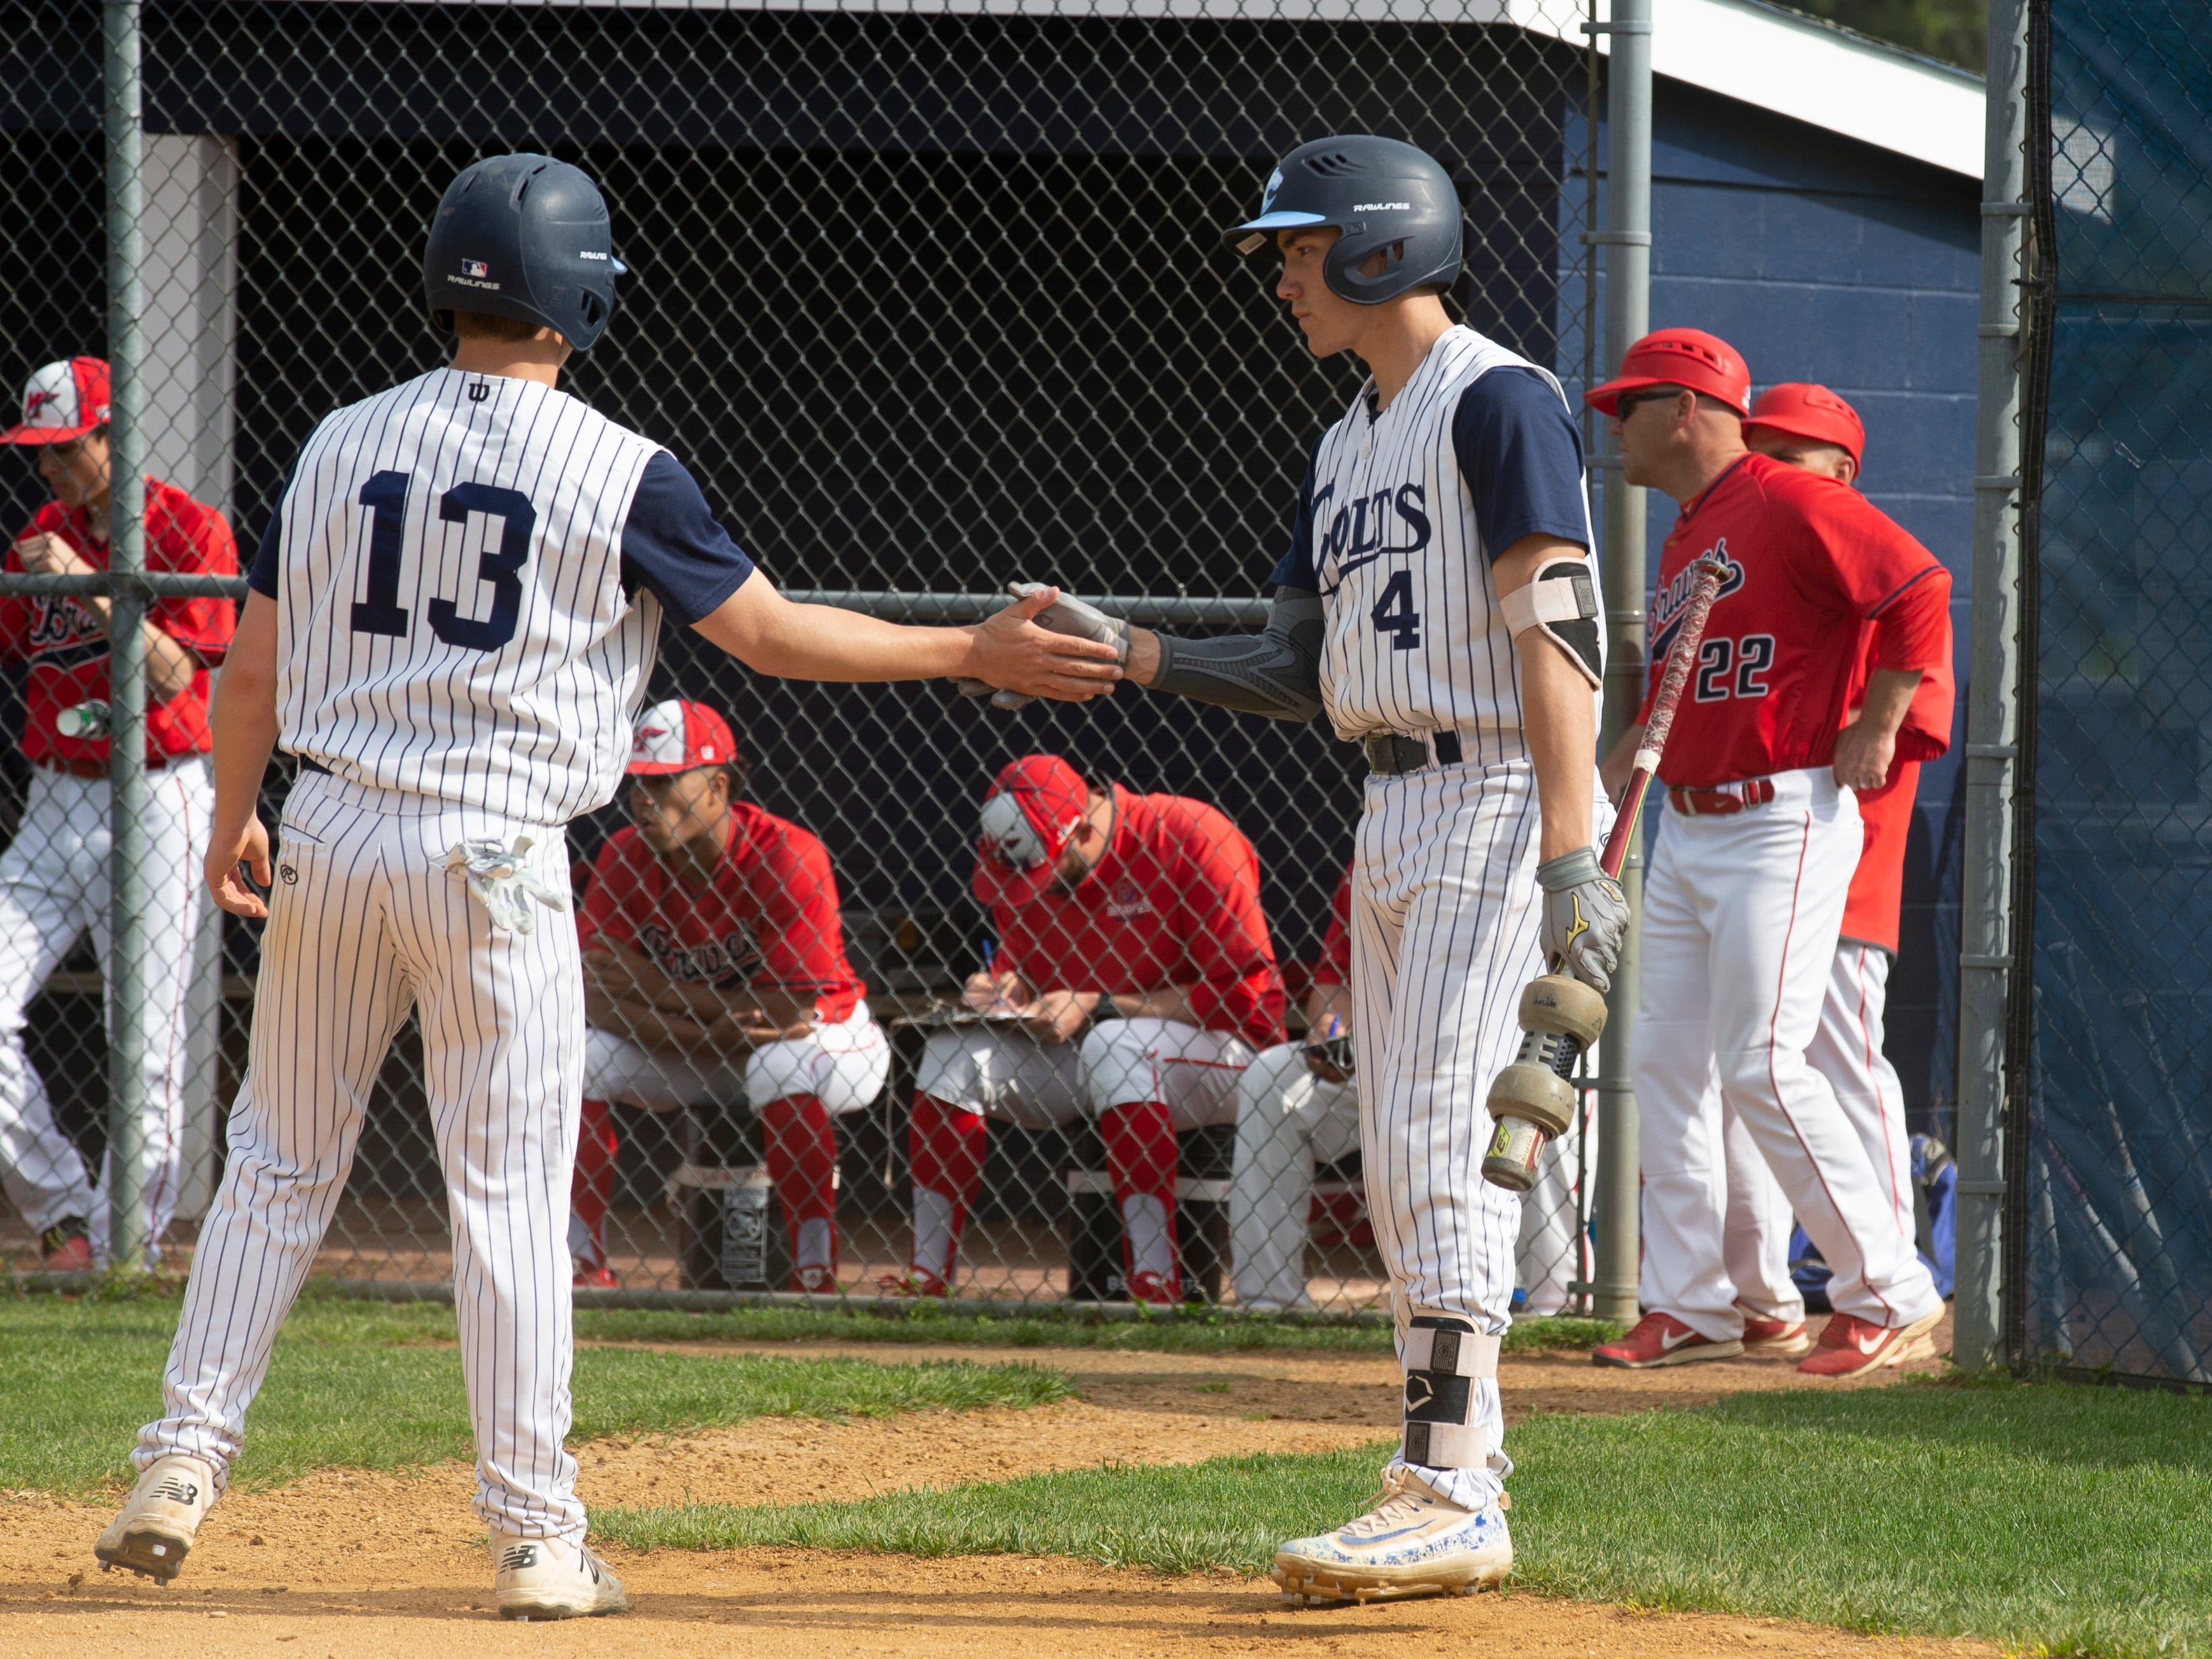 CBA's Declan Hoverter shakes hands with Pat Reilly after scoring his team's first run of game Manalapan baseball vs Christian Brothers Academy in Middletown NJ. On May 2, 2019.